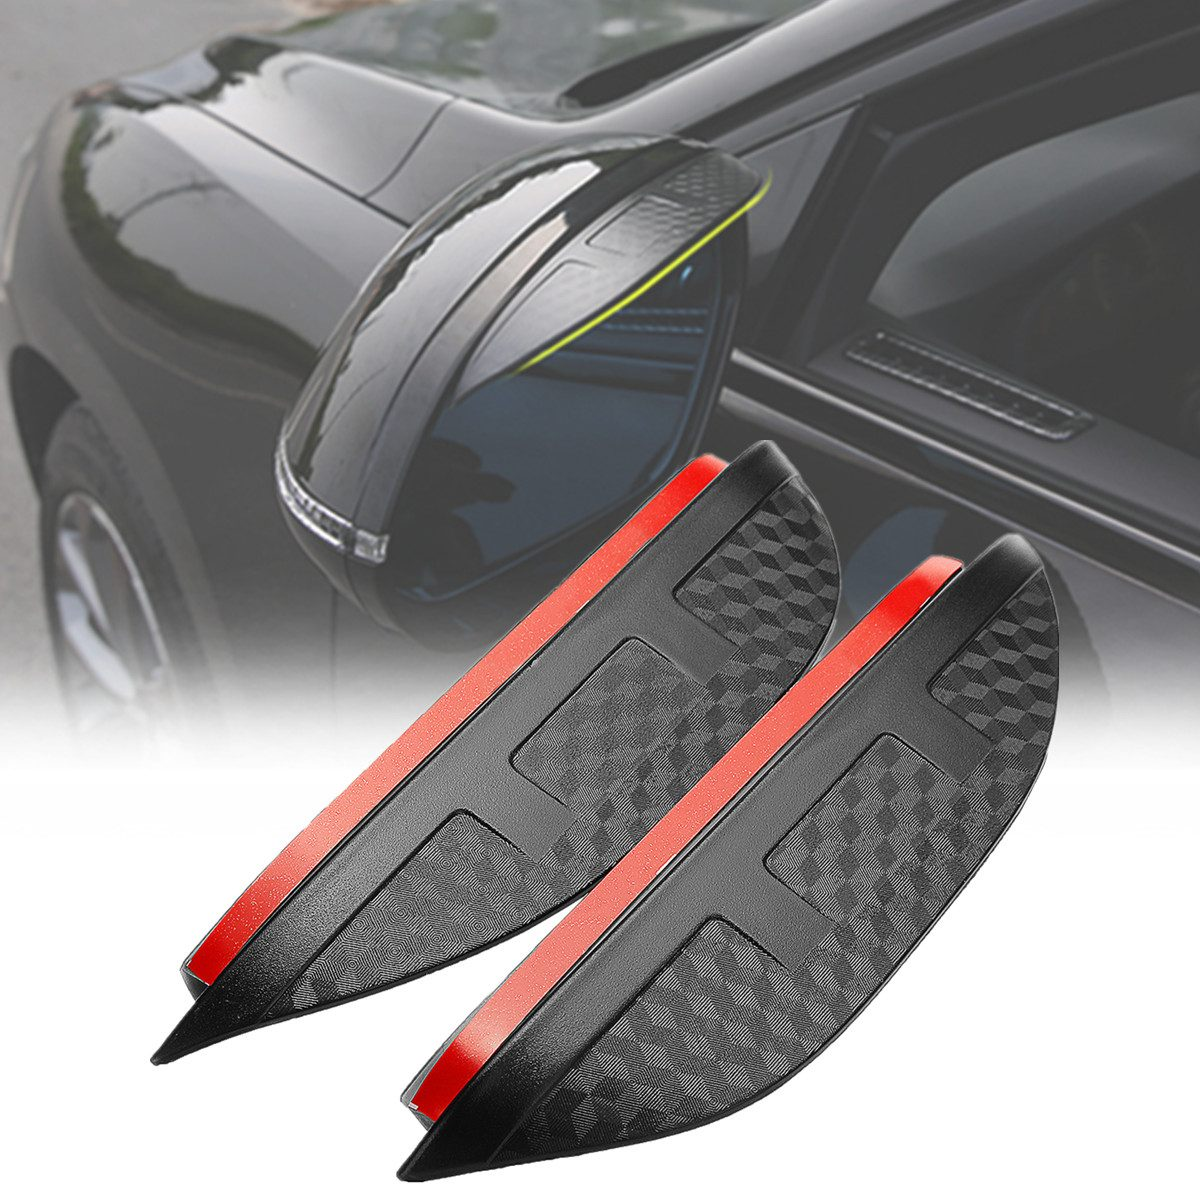 2X Car Rearview Mirror Sun Visor Shade Shield Rain Eyebrow Guard For Toyota-C-HR Carbon Fiber Type Plastic 195x45mm Embossed